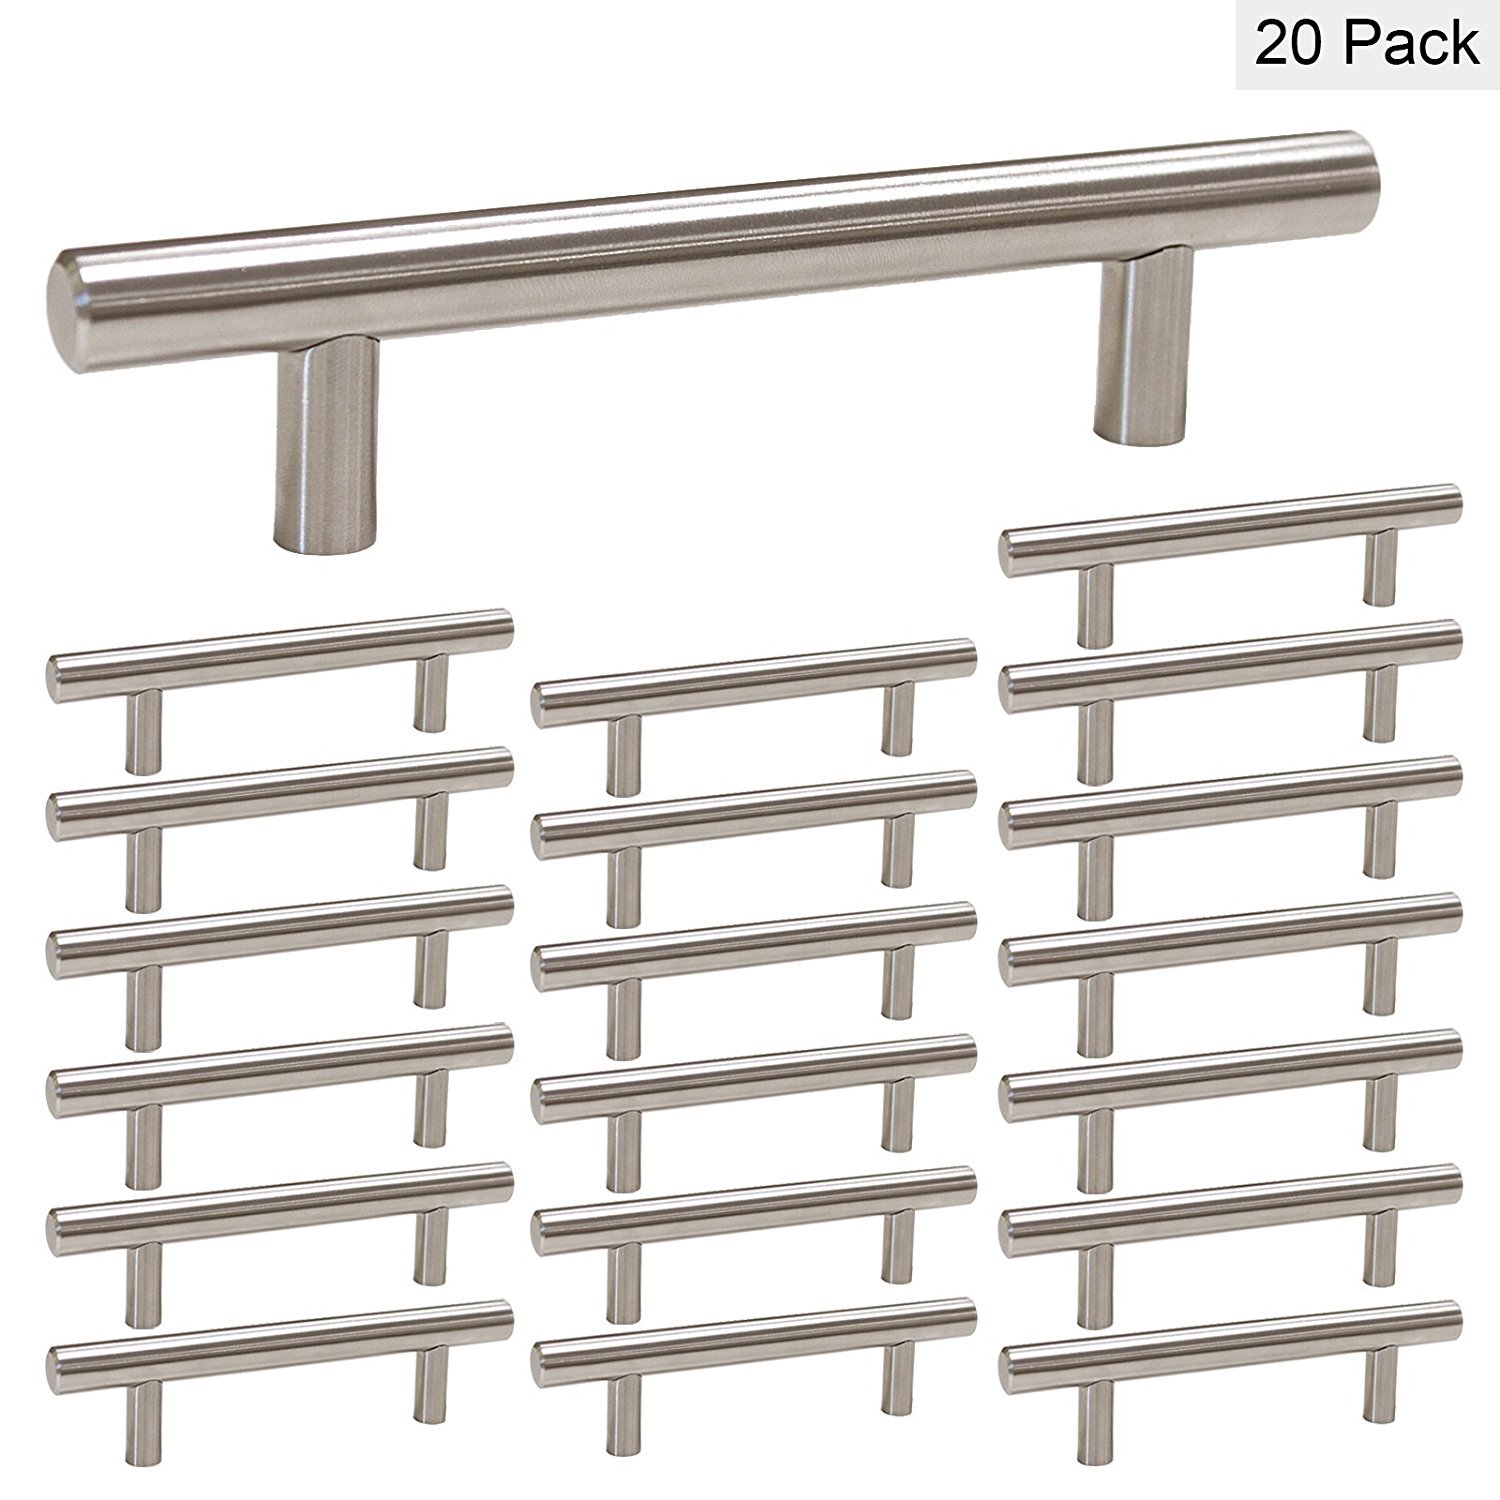 homdiy Kitchen Cabinet Handles Brushed Nickel 3.5in(90mm) Hole Centers HD201SN 20 Pack Stainless Drawer Pulls Kitchen Pulls for Cabinets Kitchen Door Handles Satin Nickel Cabinet Pulls